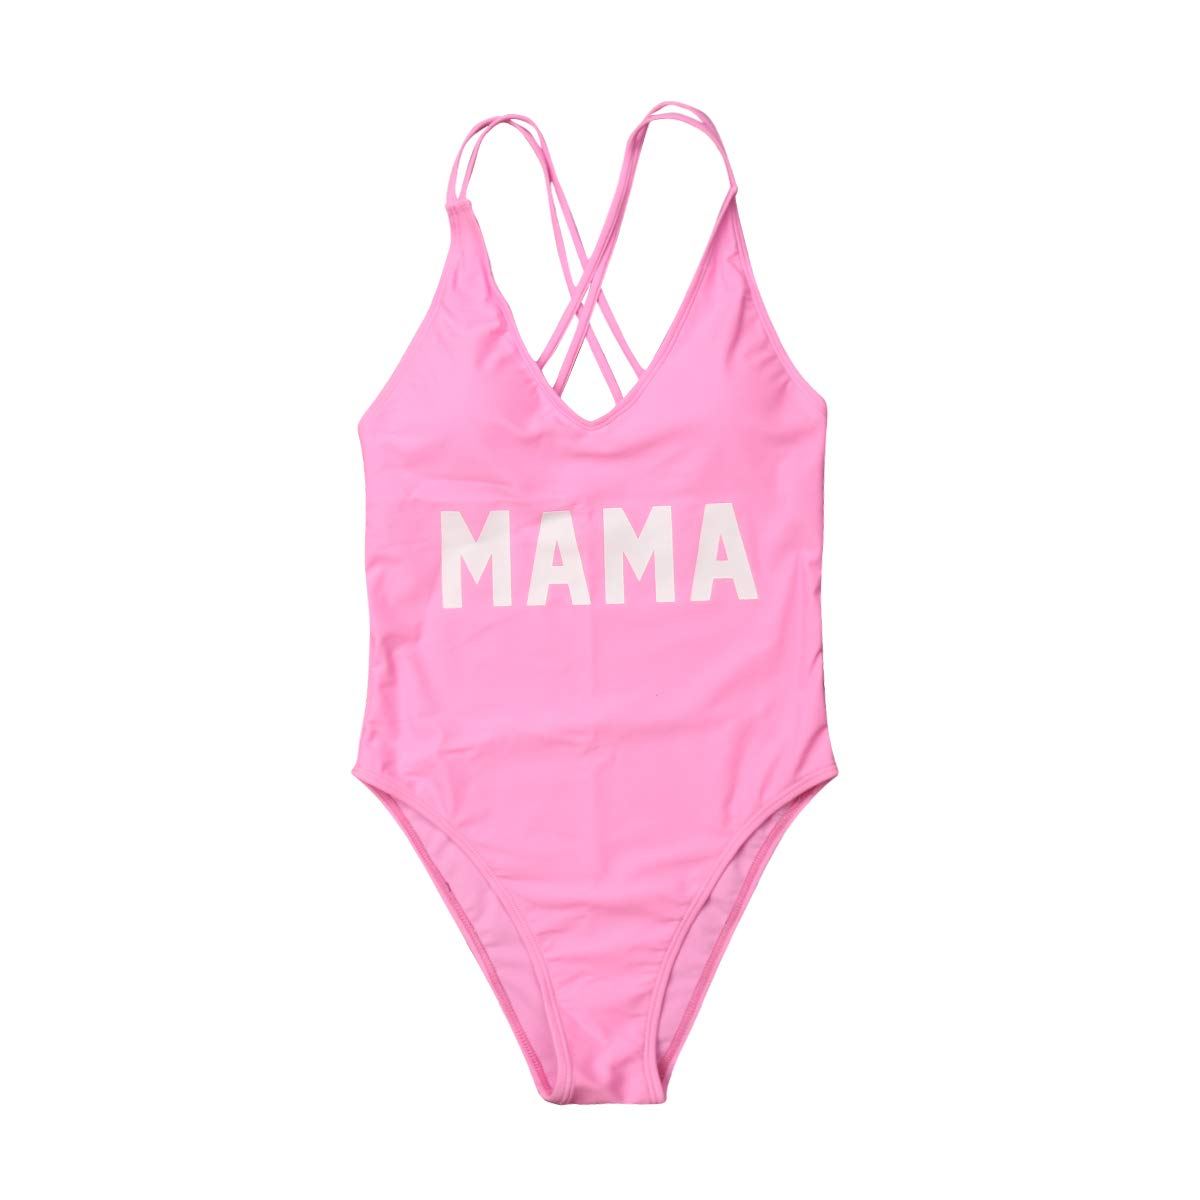 Mommy and Me Swimsuit Family Matching Baby Girls Women Letter Print One Piece Swimwear Bathing Suit